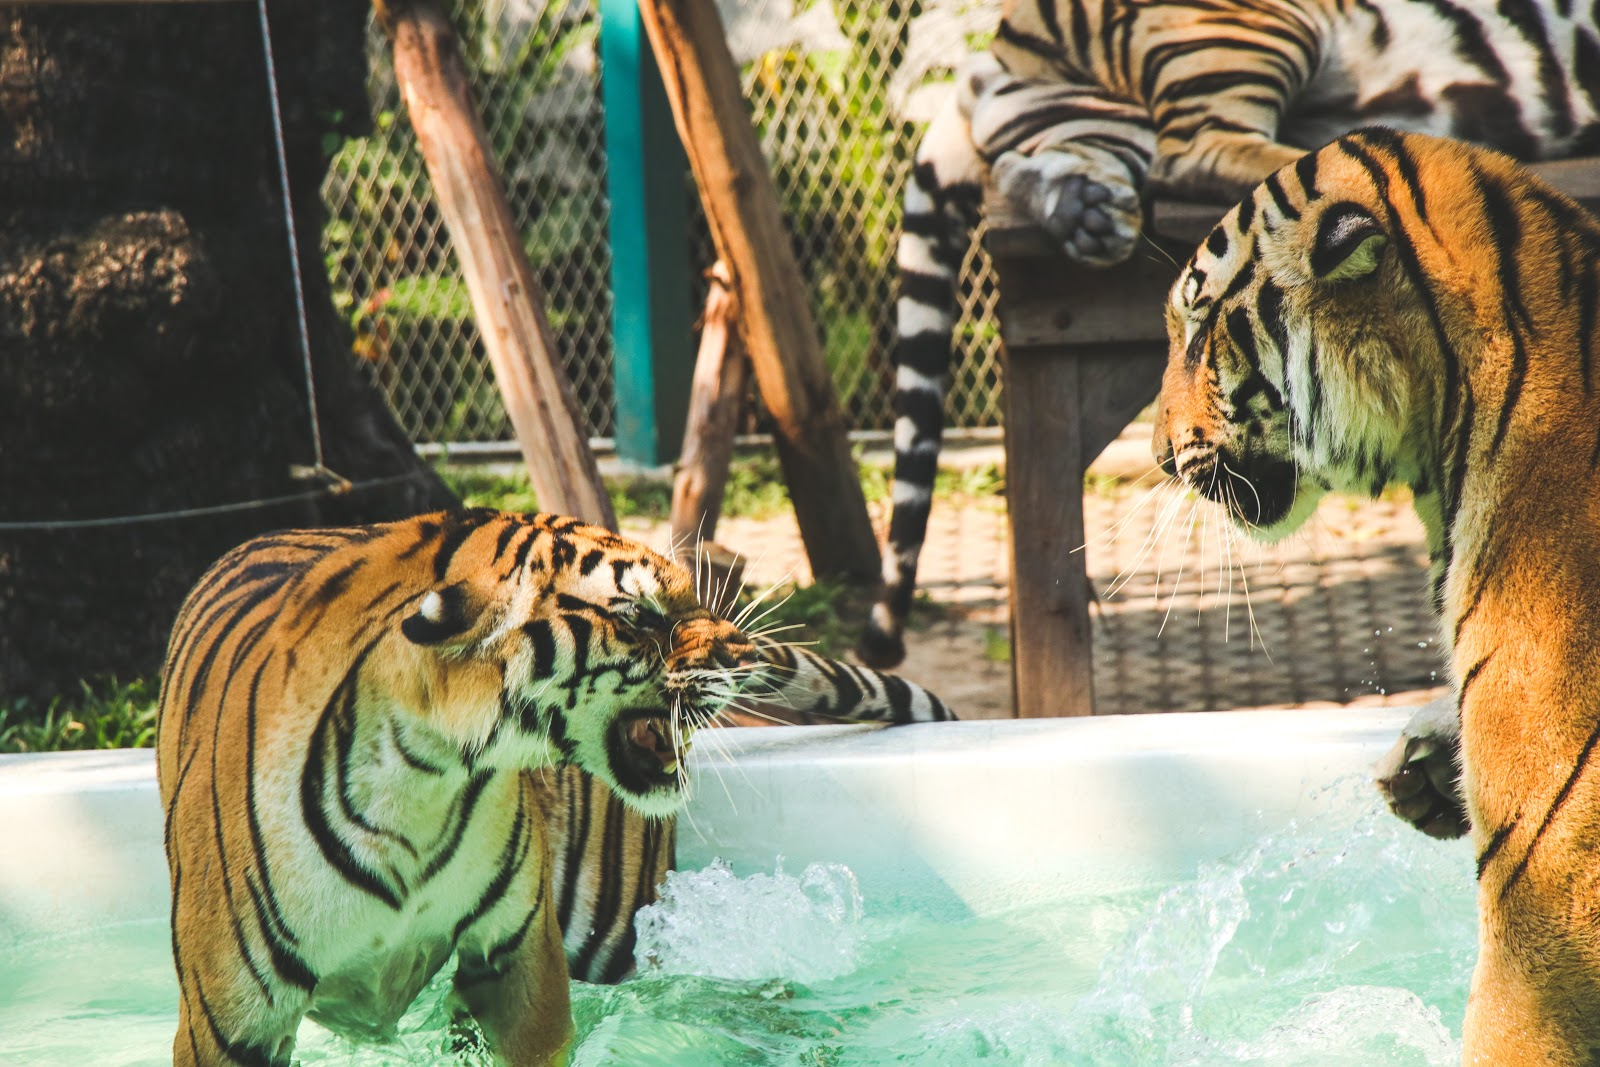 tiger-standing-in-above-ground-pool-images